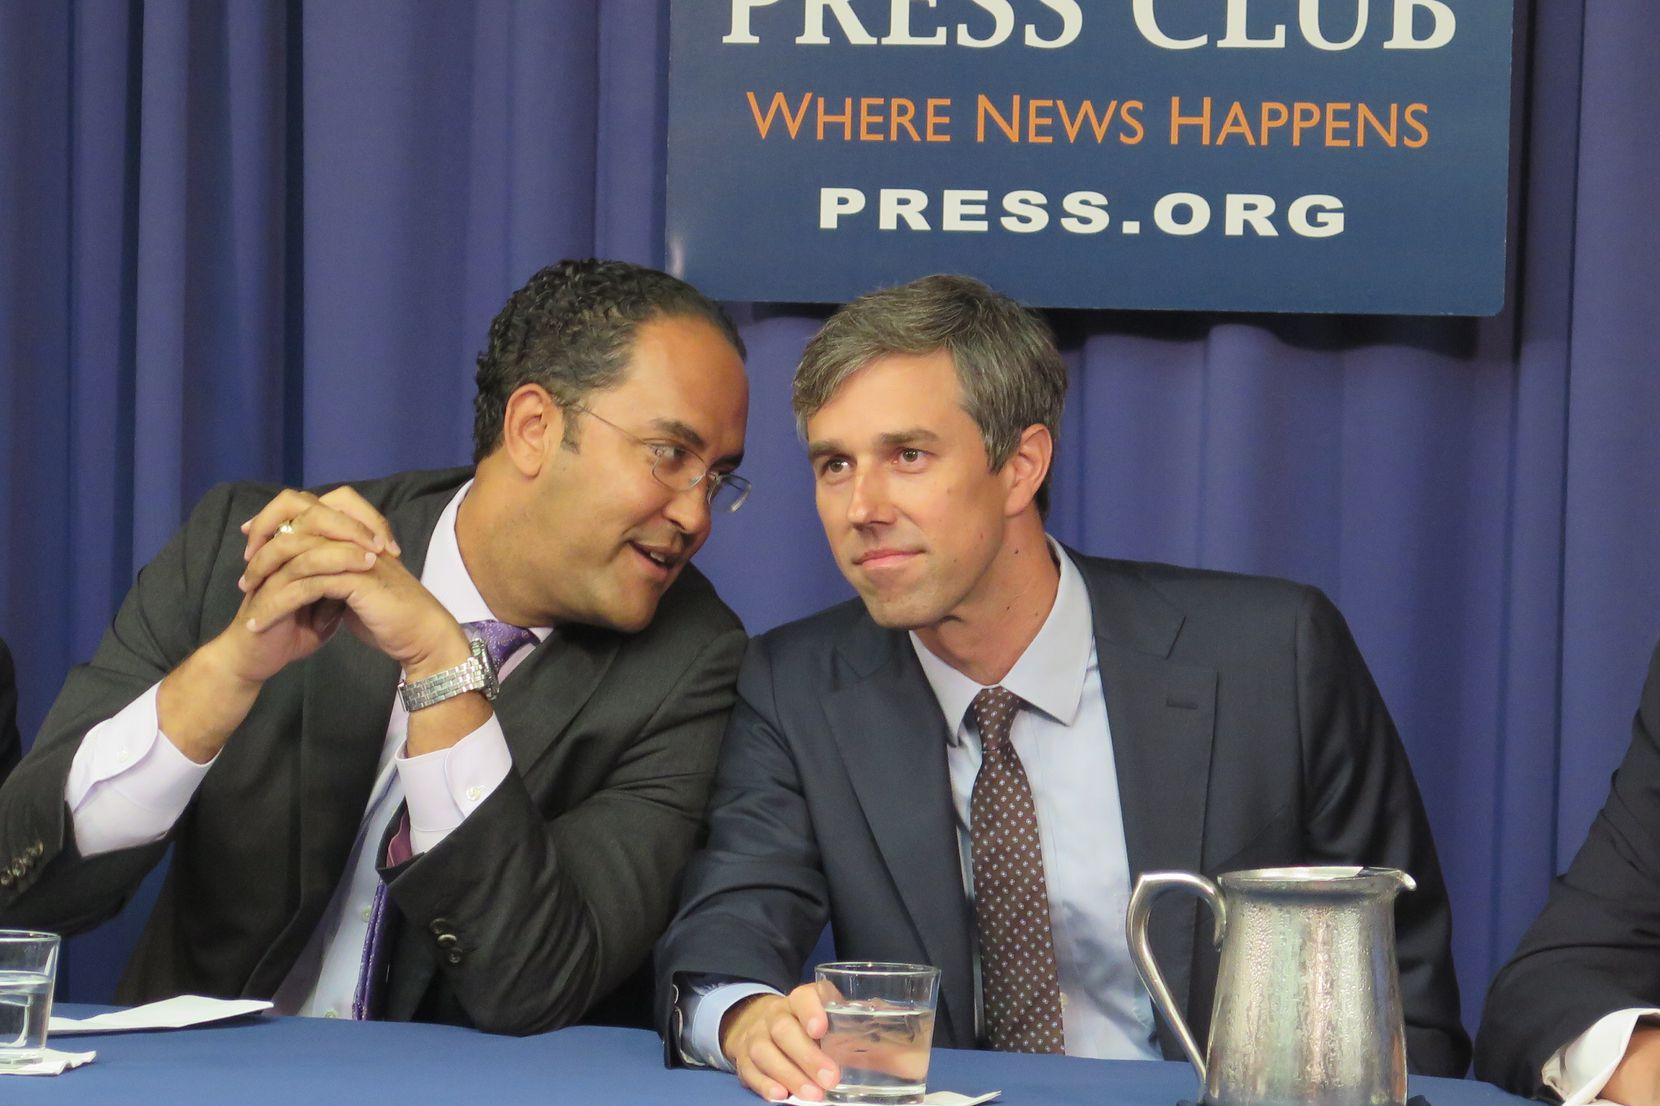 Reps. Will Hurd, left, and Beto O'Rourke receive civility award Tuesday at the National Press Club.